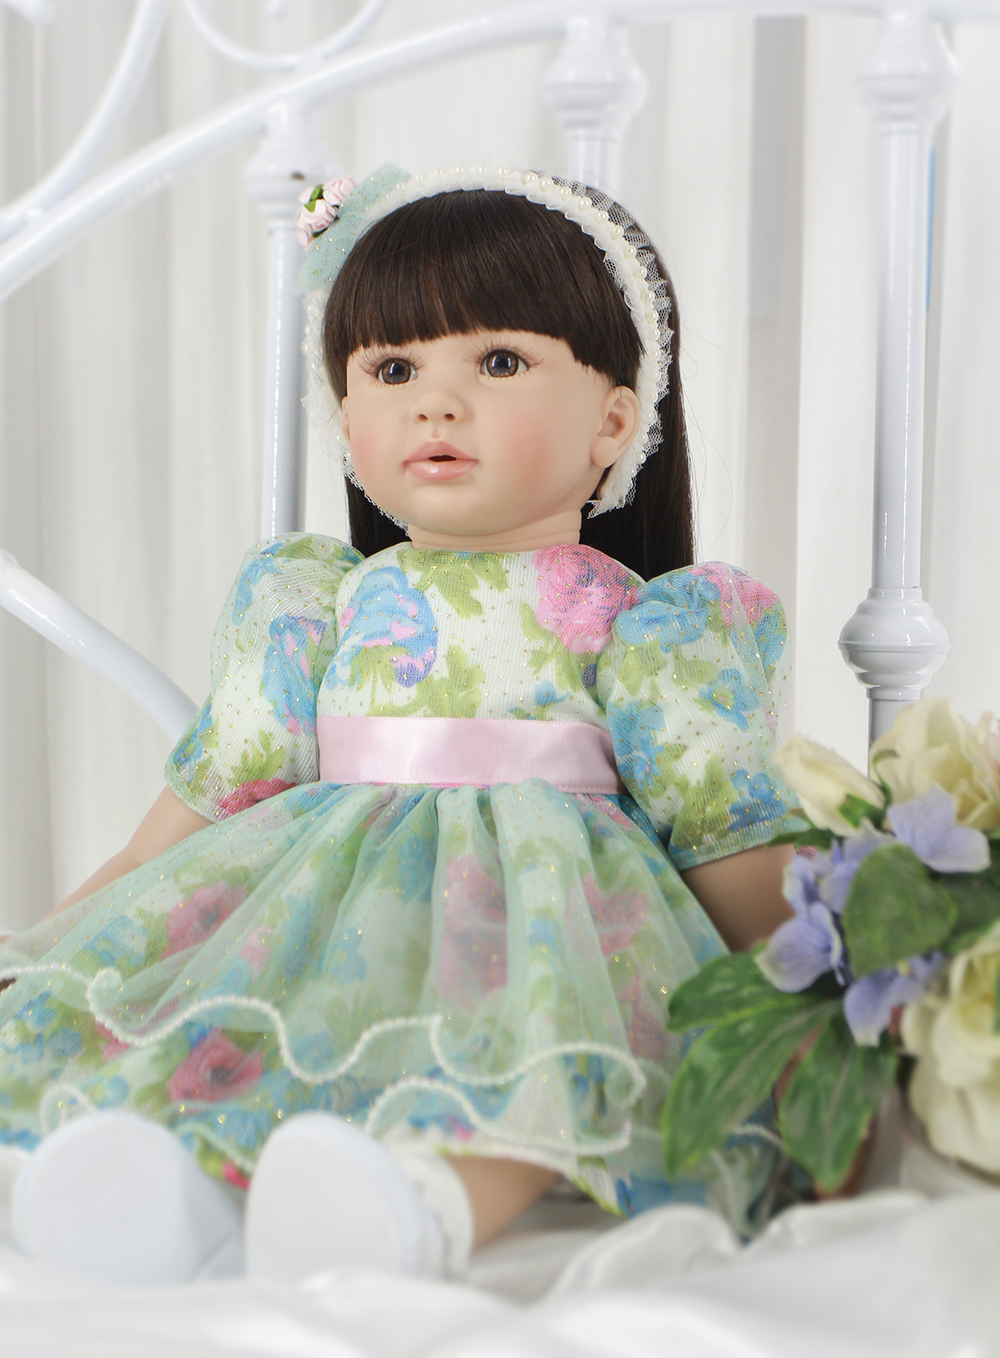 Pursue 24/60 cm Light Green Dress Princess Doll Reborn Silicone Toddler Girl Baby Doll Toys for Children Girl Birthday Gift pursue 22 56 cm big smile face reborn boy toddler baby doll cotton body vinyl silicone baby boy doll for children birthday gift